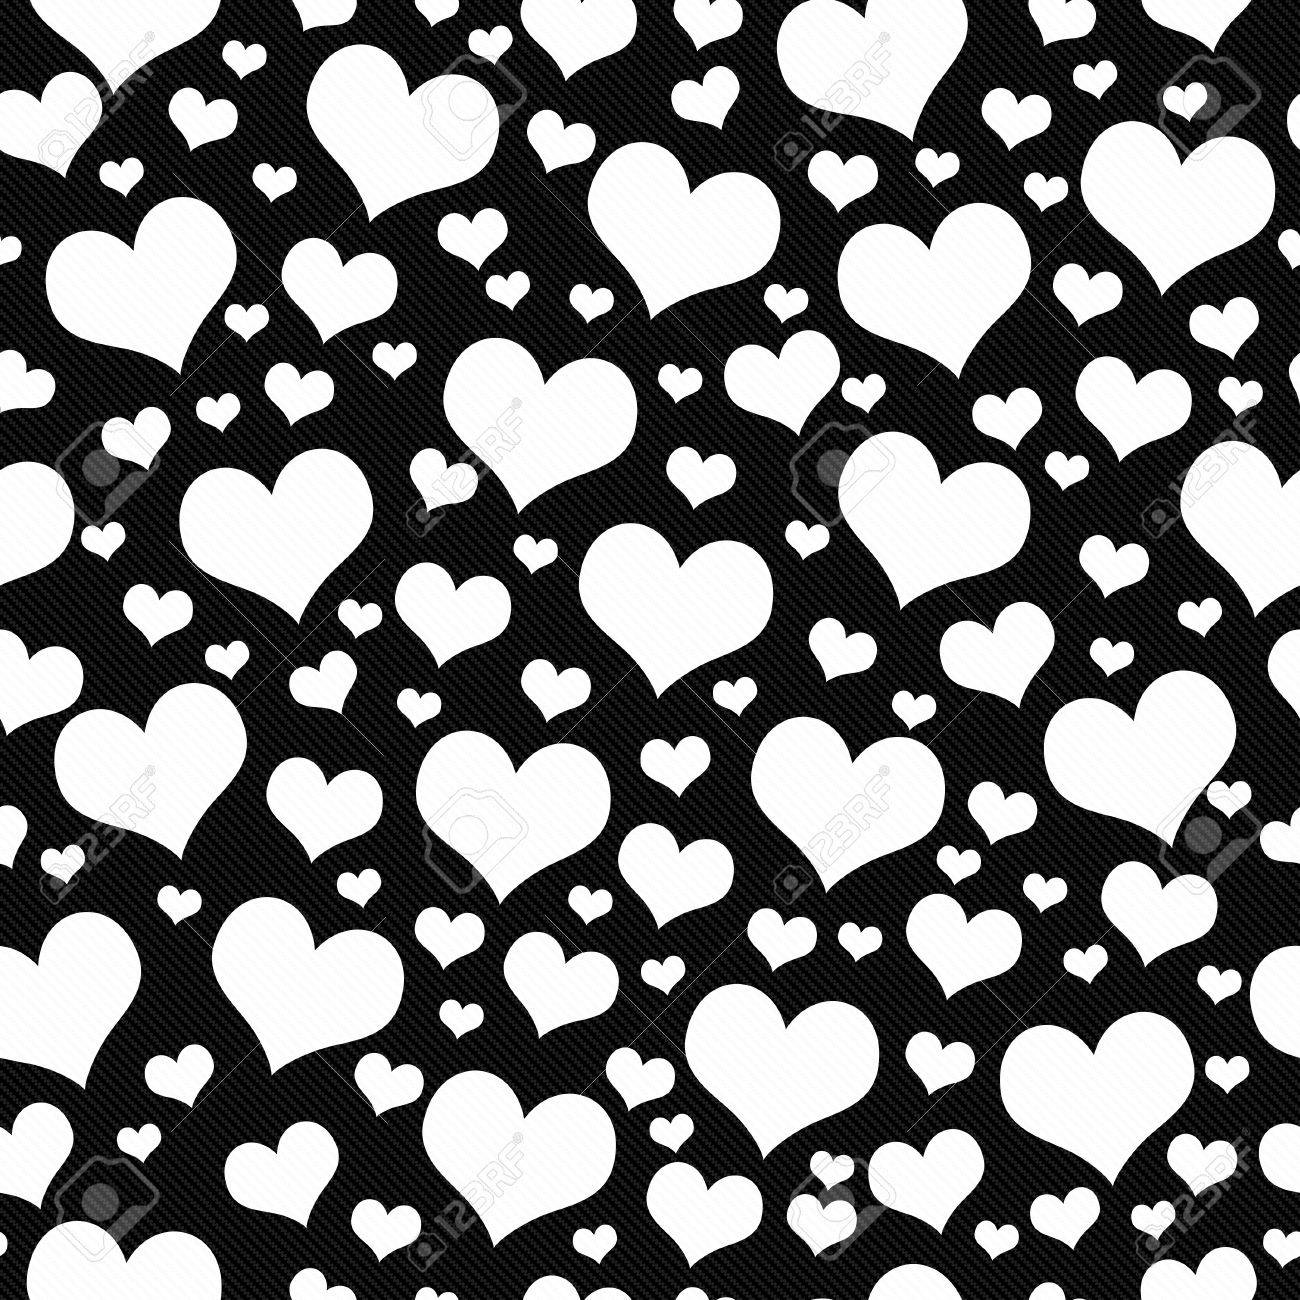 Black And White Hearts Tile Pattern Repeat Background That Is Stock Photo Picture And Royalty Free Image Image 43434374